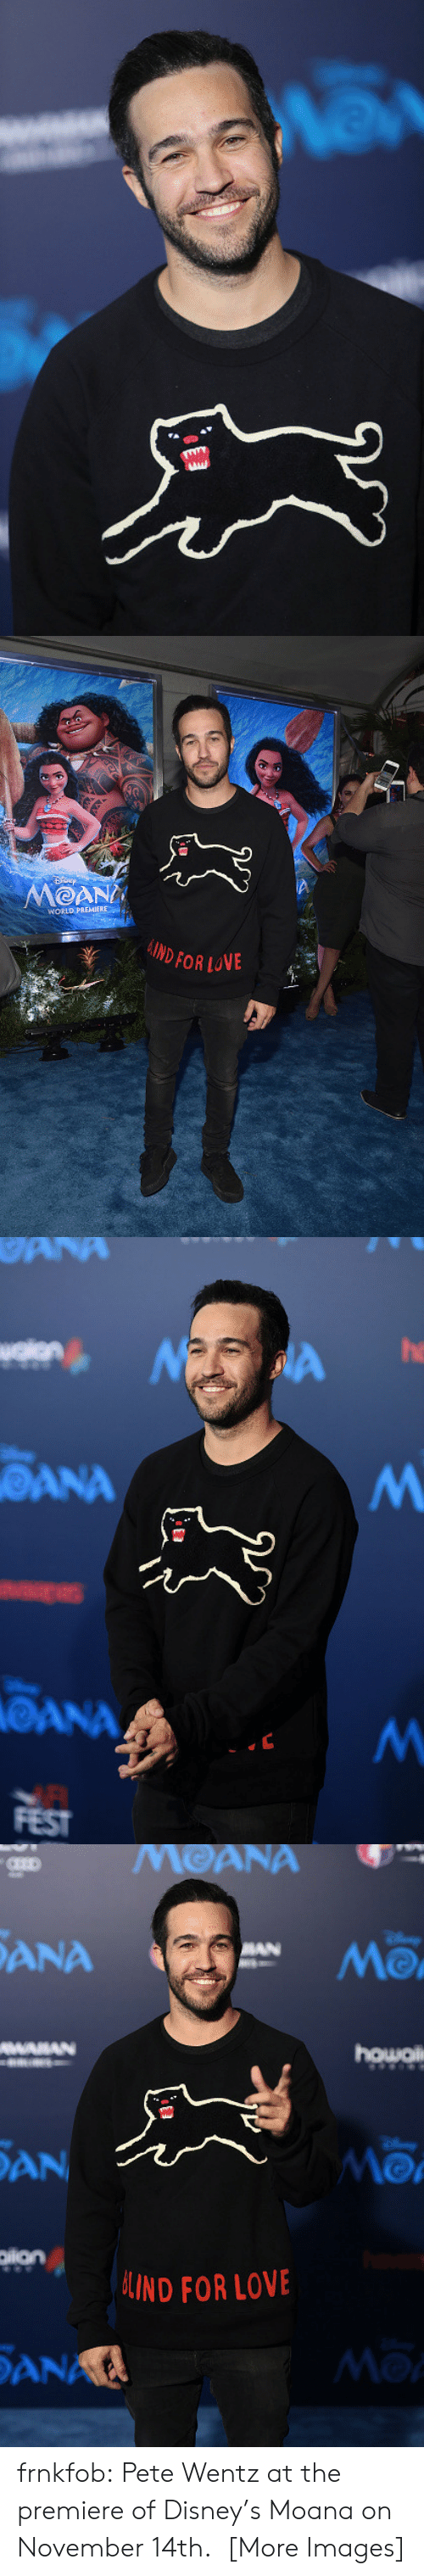 moana: WORLD PREMIERE  DFOR LOVE   he  ANA  OANA  FEST   DANA  ANA  MO  AN  IND FOR LOVE  AN  Mo frnkfob:   Pete Wentz at the premiere of Disney's Moana on November 14th.  [More Images]